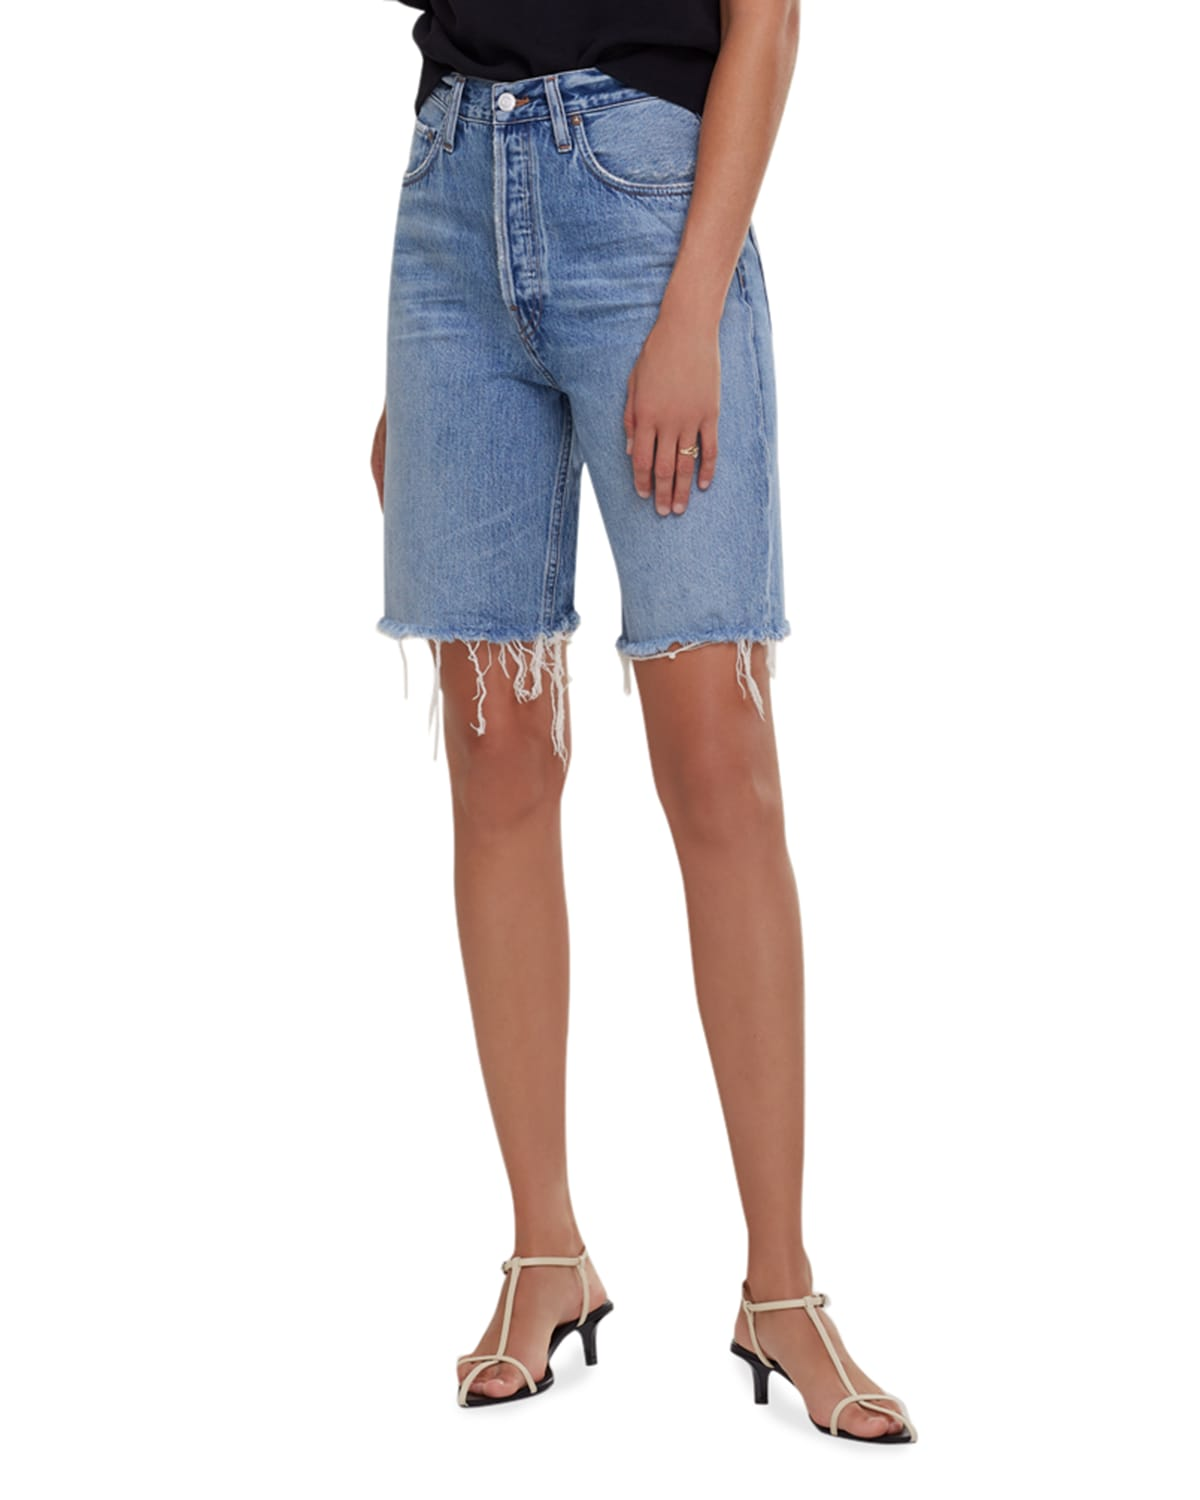 90s Pinched-Waist Shorts